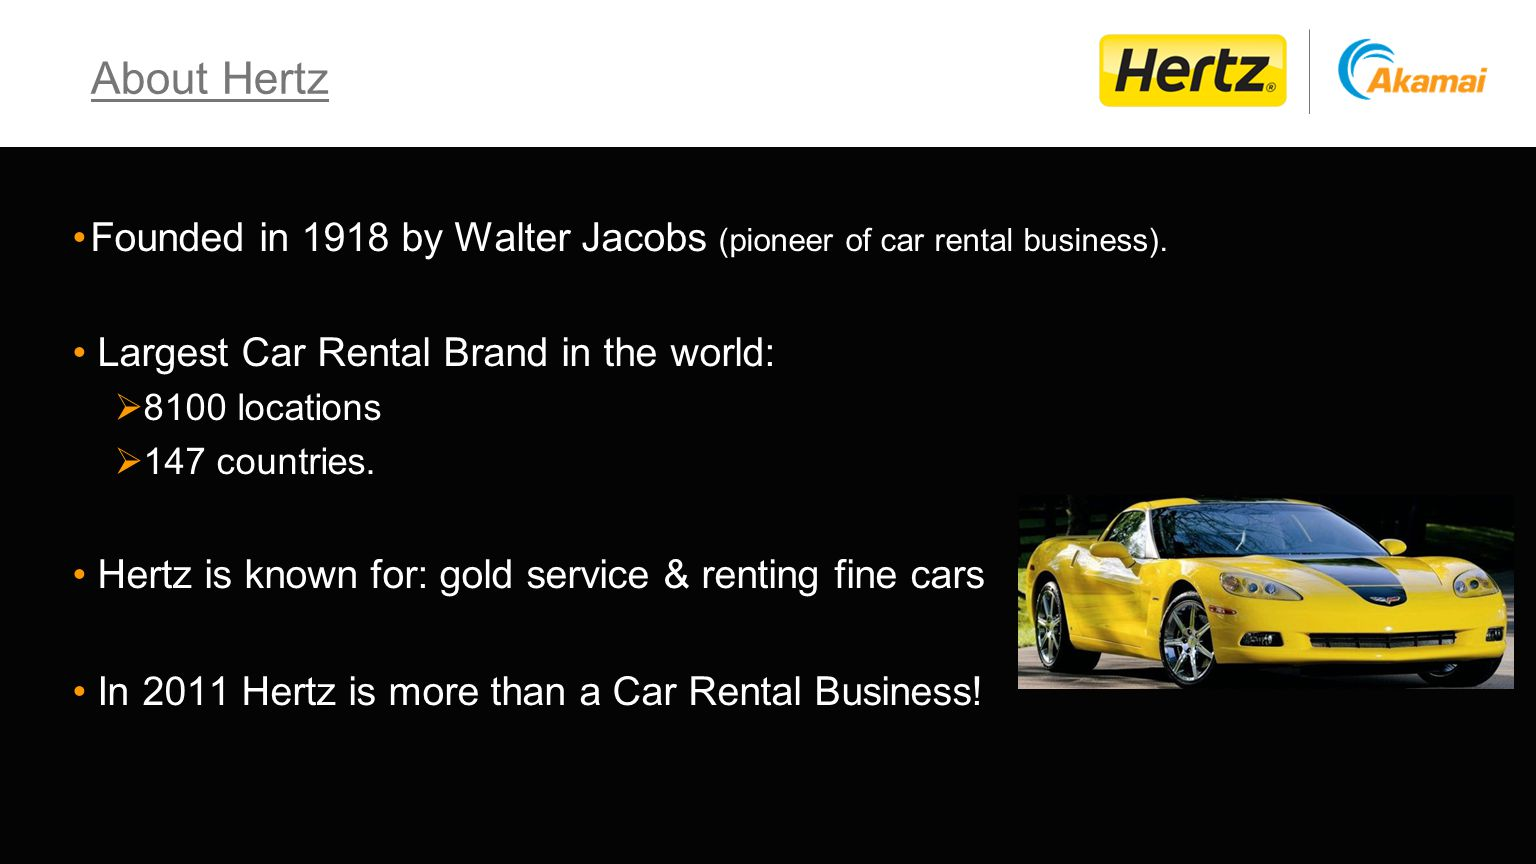 About Hertz Founded in 1918 by Walter Jacobs (pioneer of car rental business). Largest Car Rental Brand in the world: